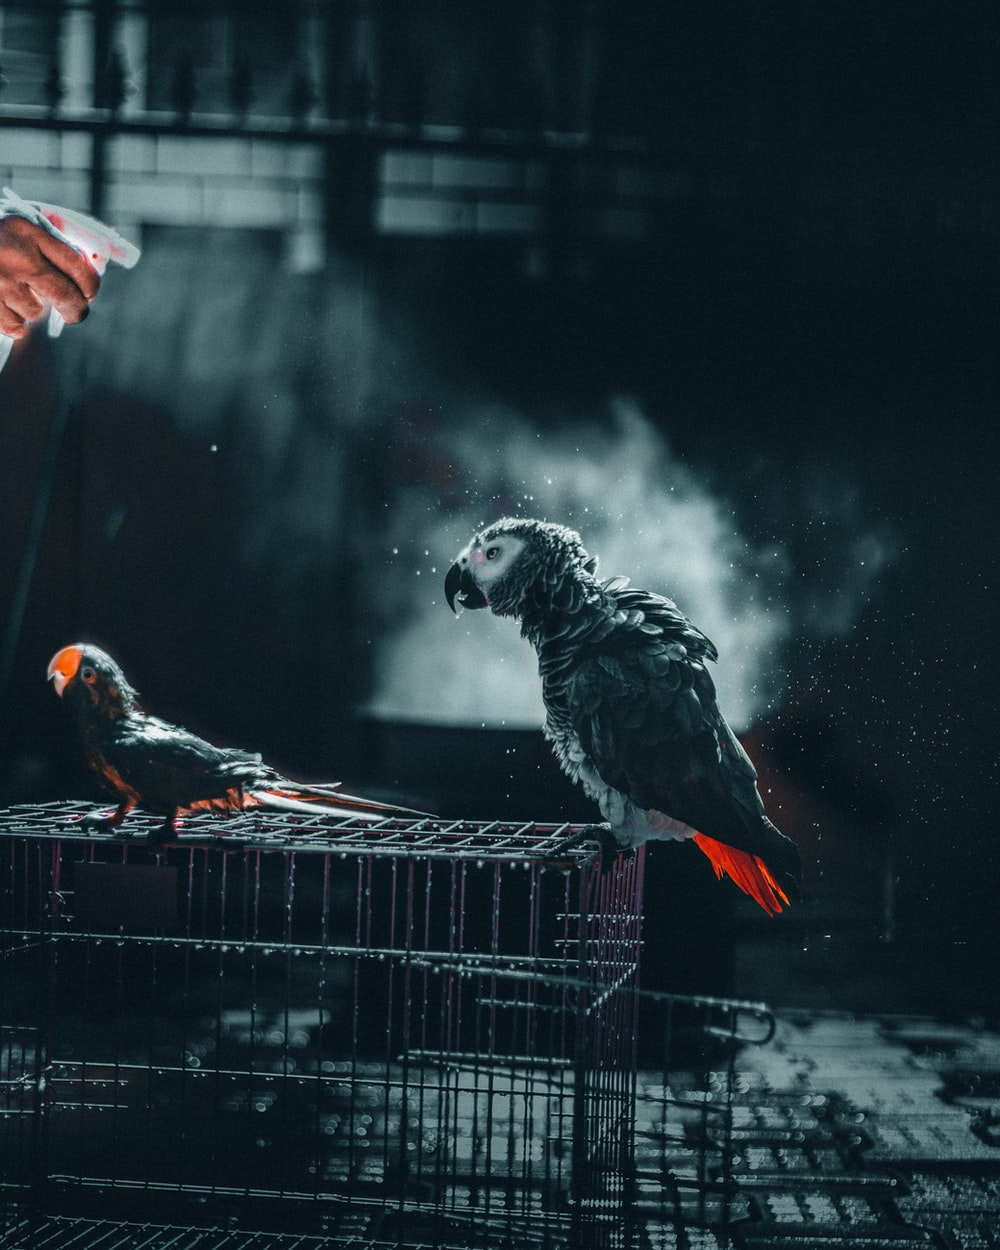 gray and white parrot on black metal cage